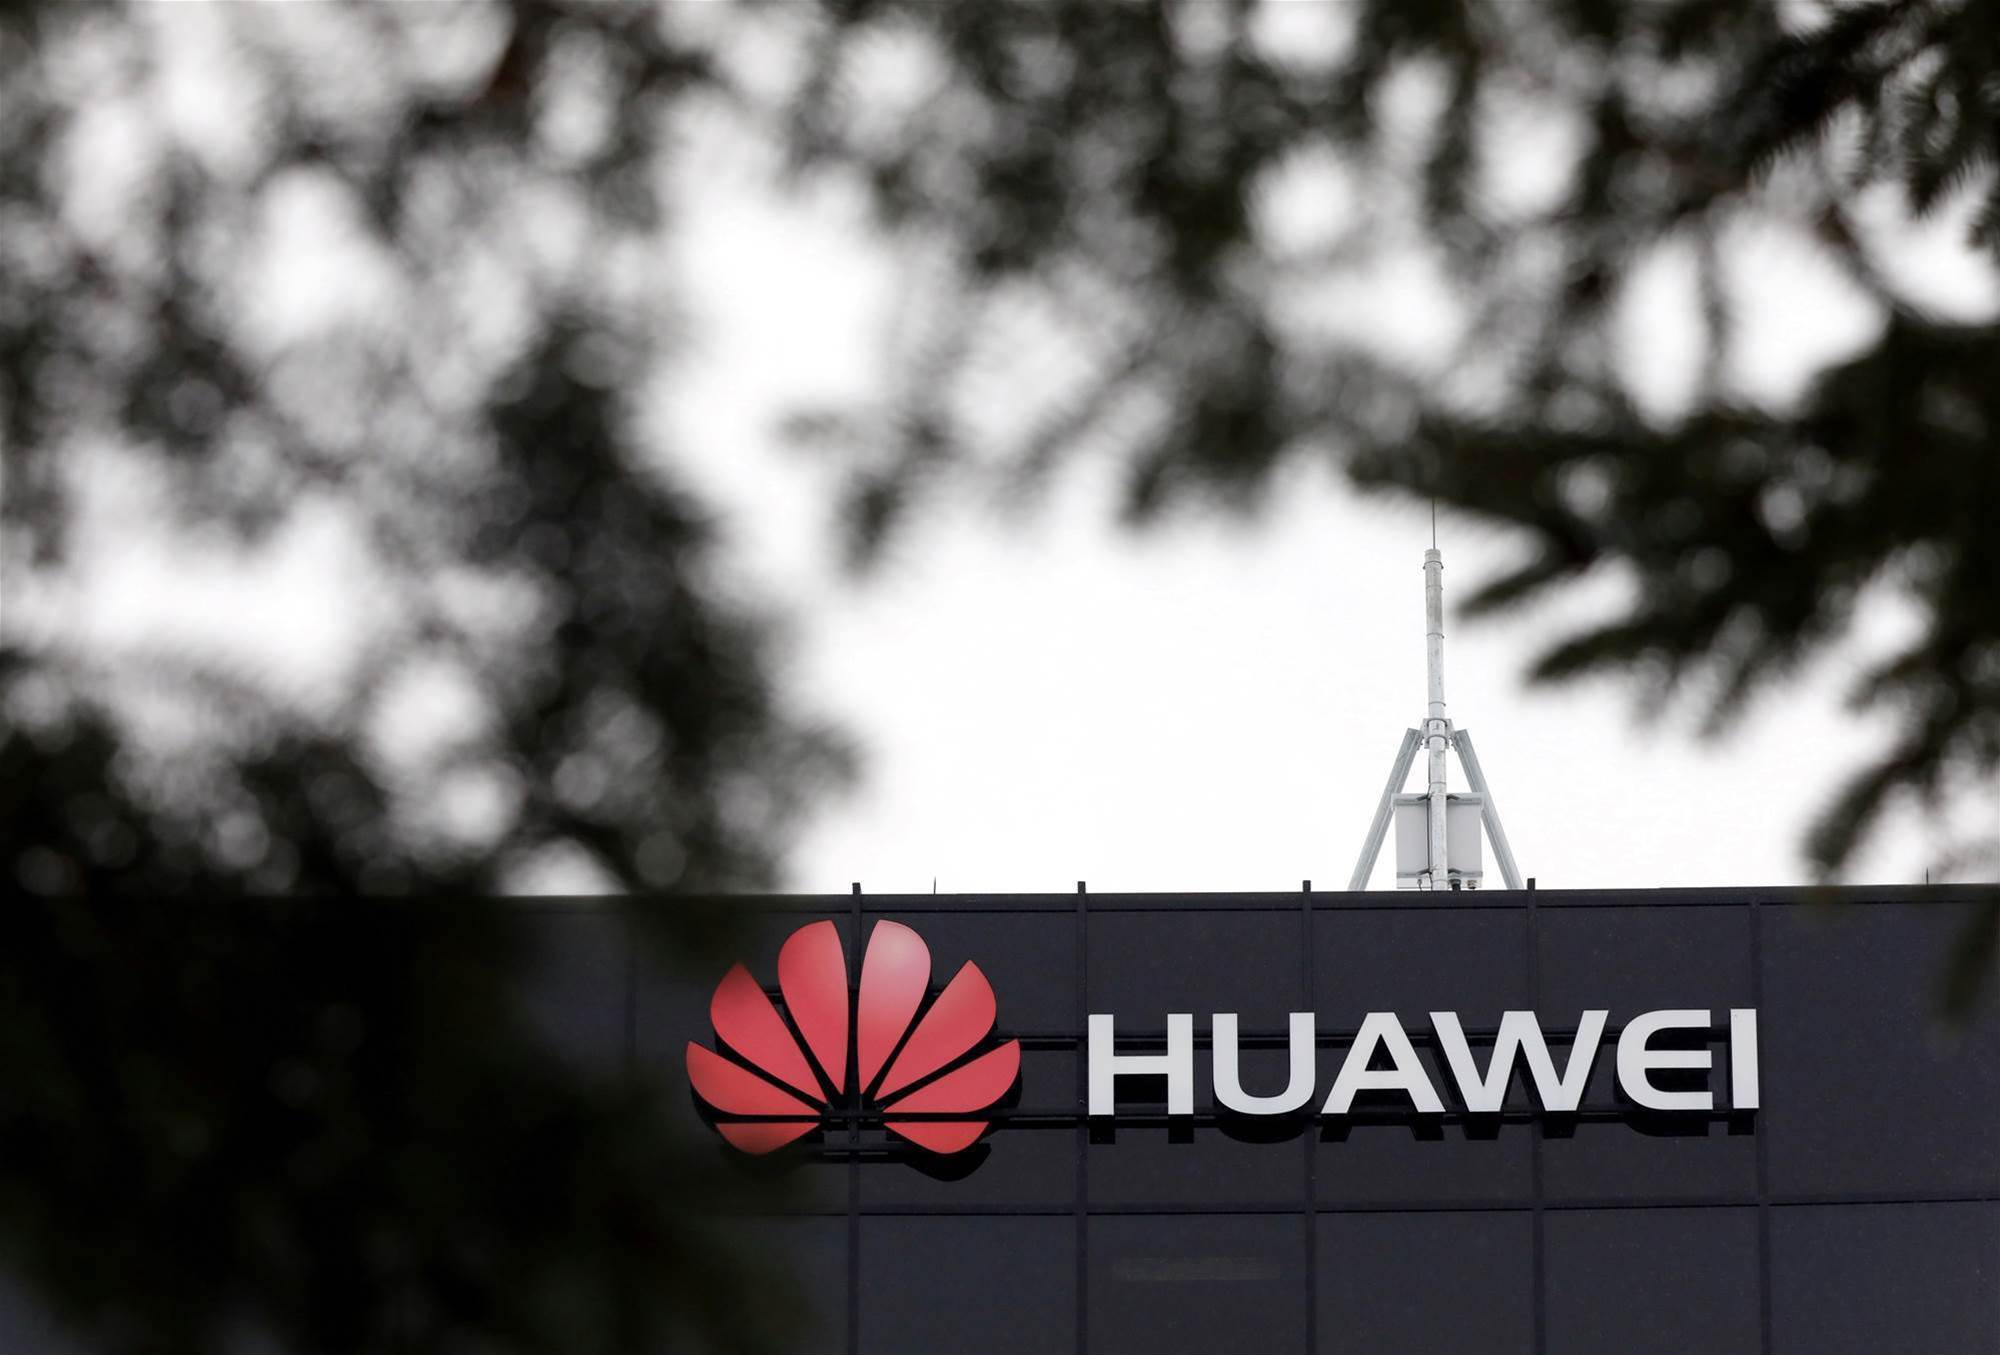 Huawei exec has strong case against extradition: Canada